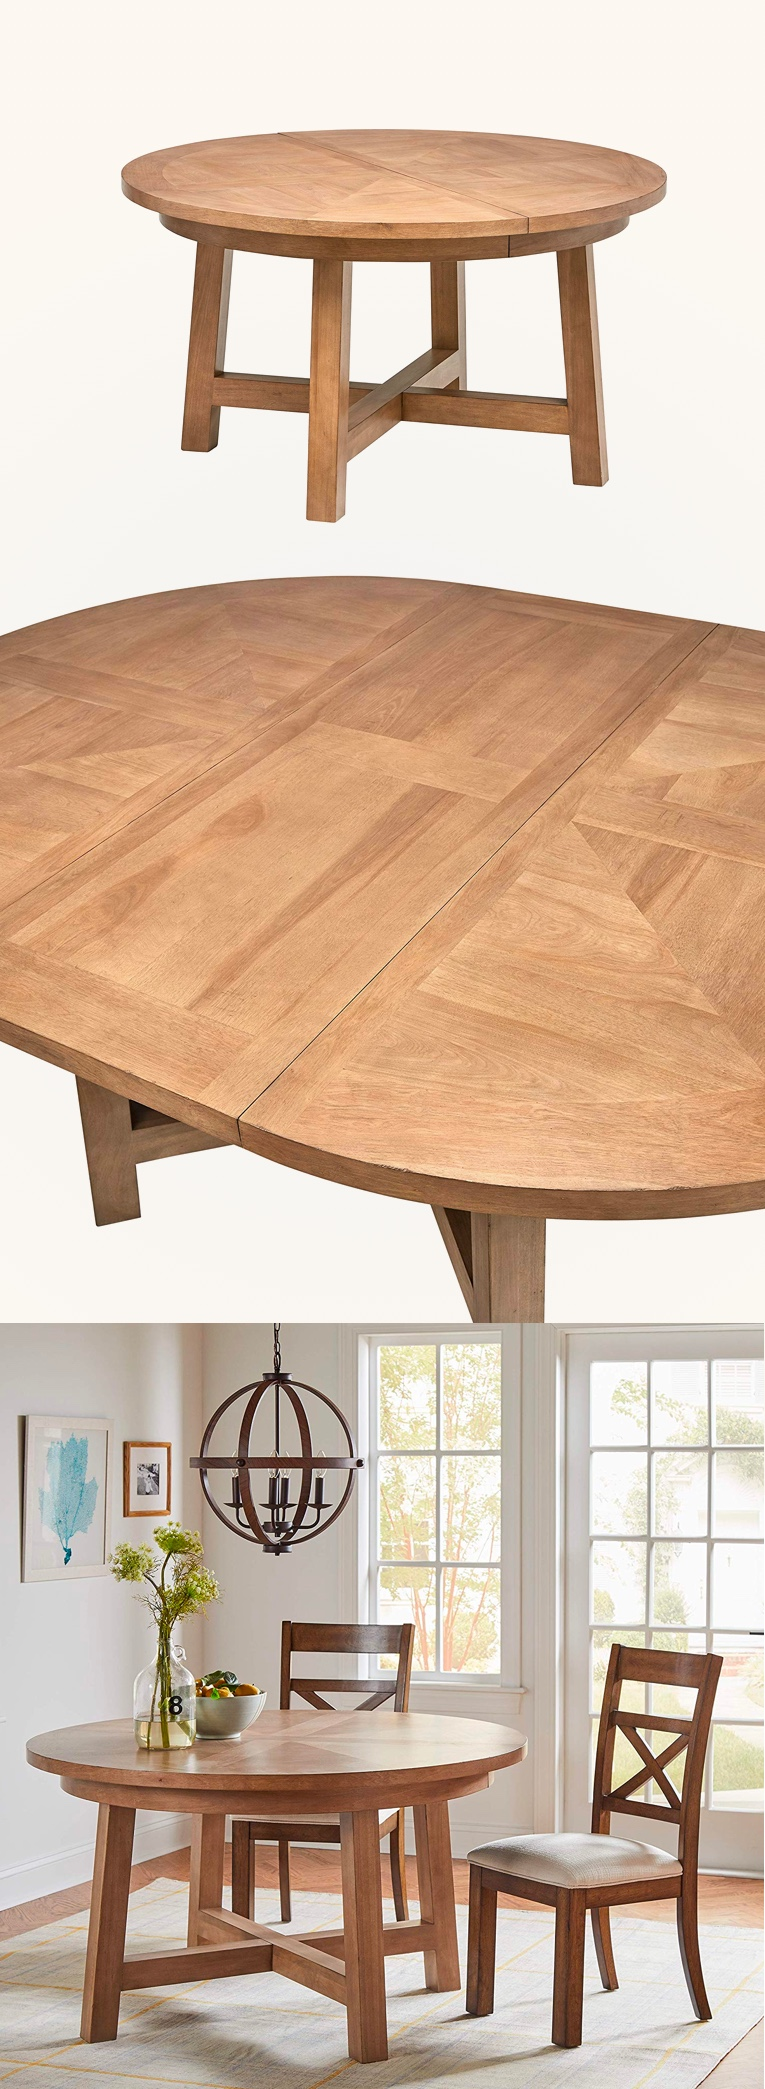 Farmhouse-Style-Round-To-Oval-Dining-Table-Light-Wood-Stain-Modern-Furniture